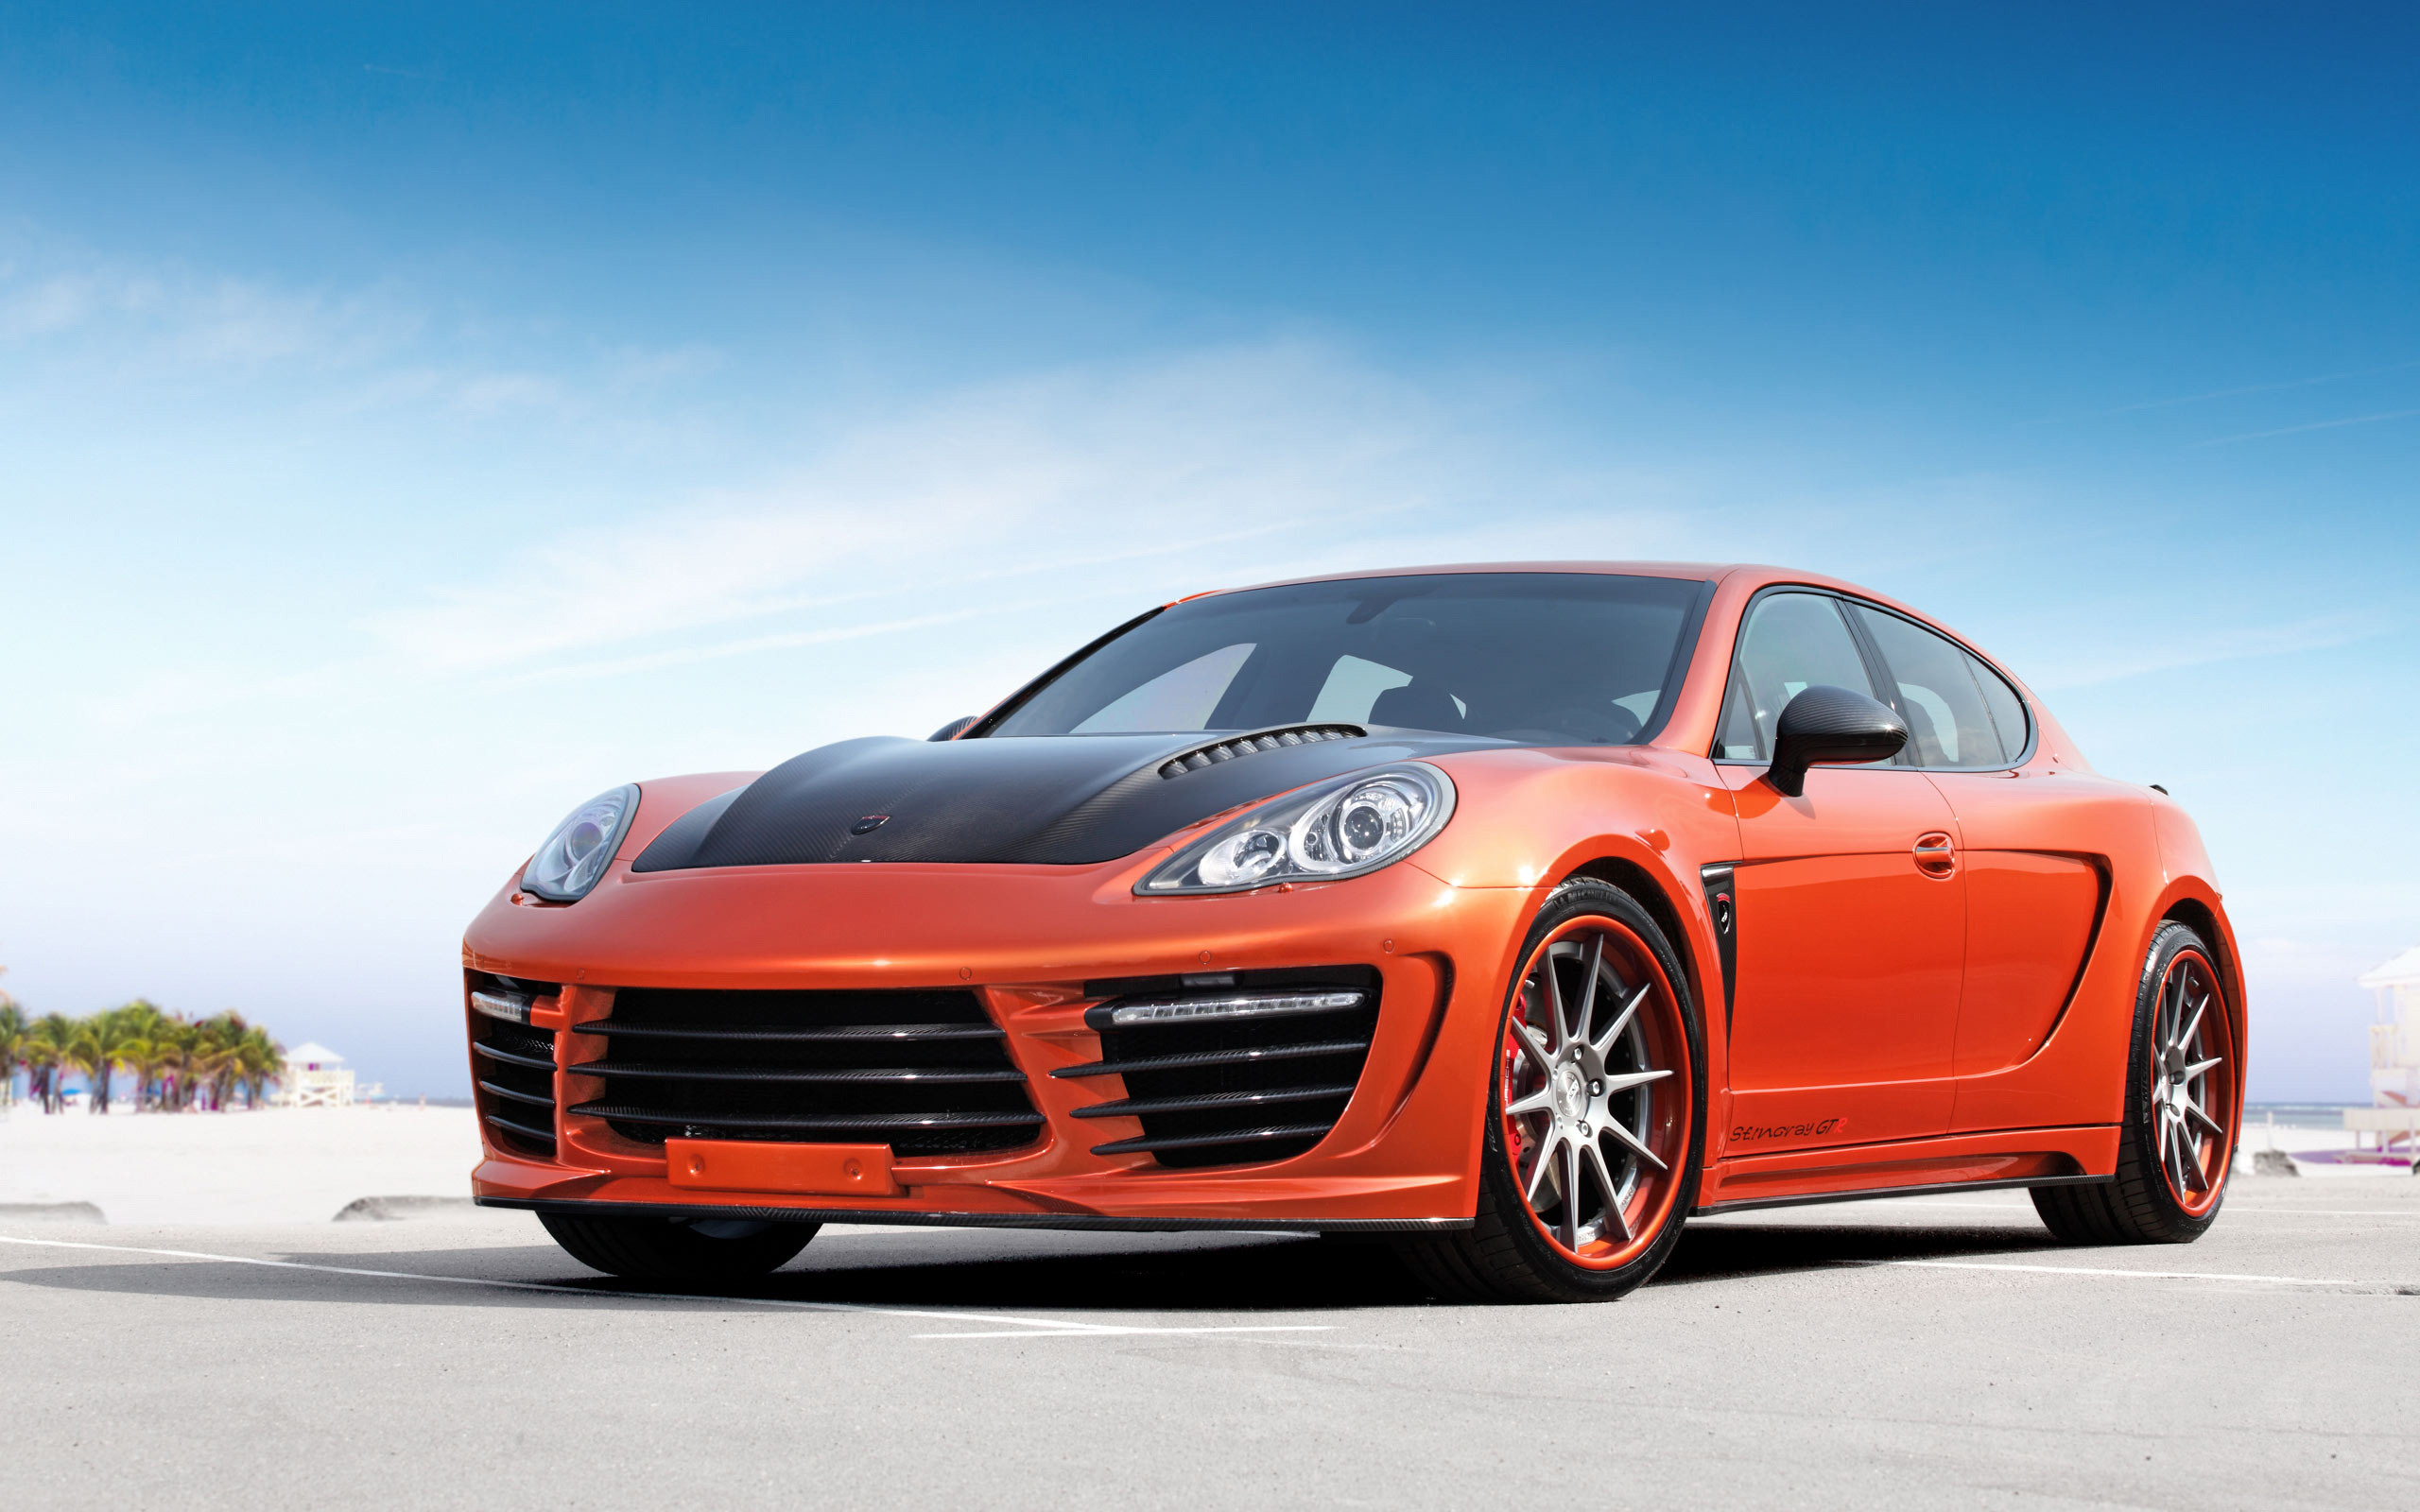 Topcar Porsche Panamera Stingray Gtr HD 172828 HD Wallpaper Res 2560x1600